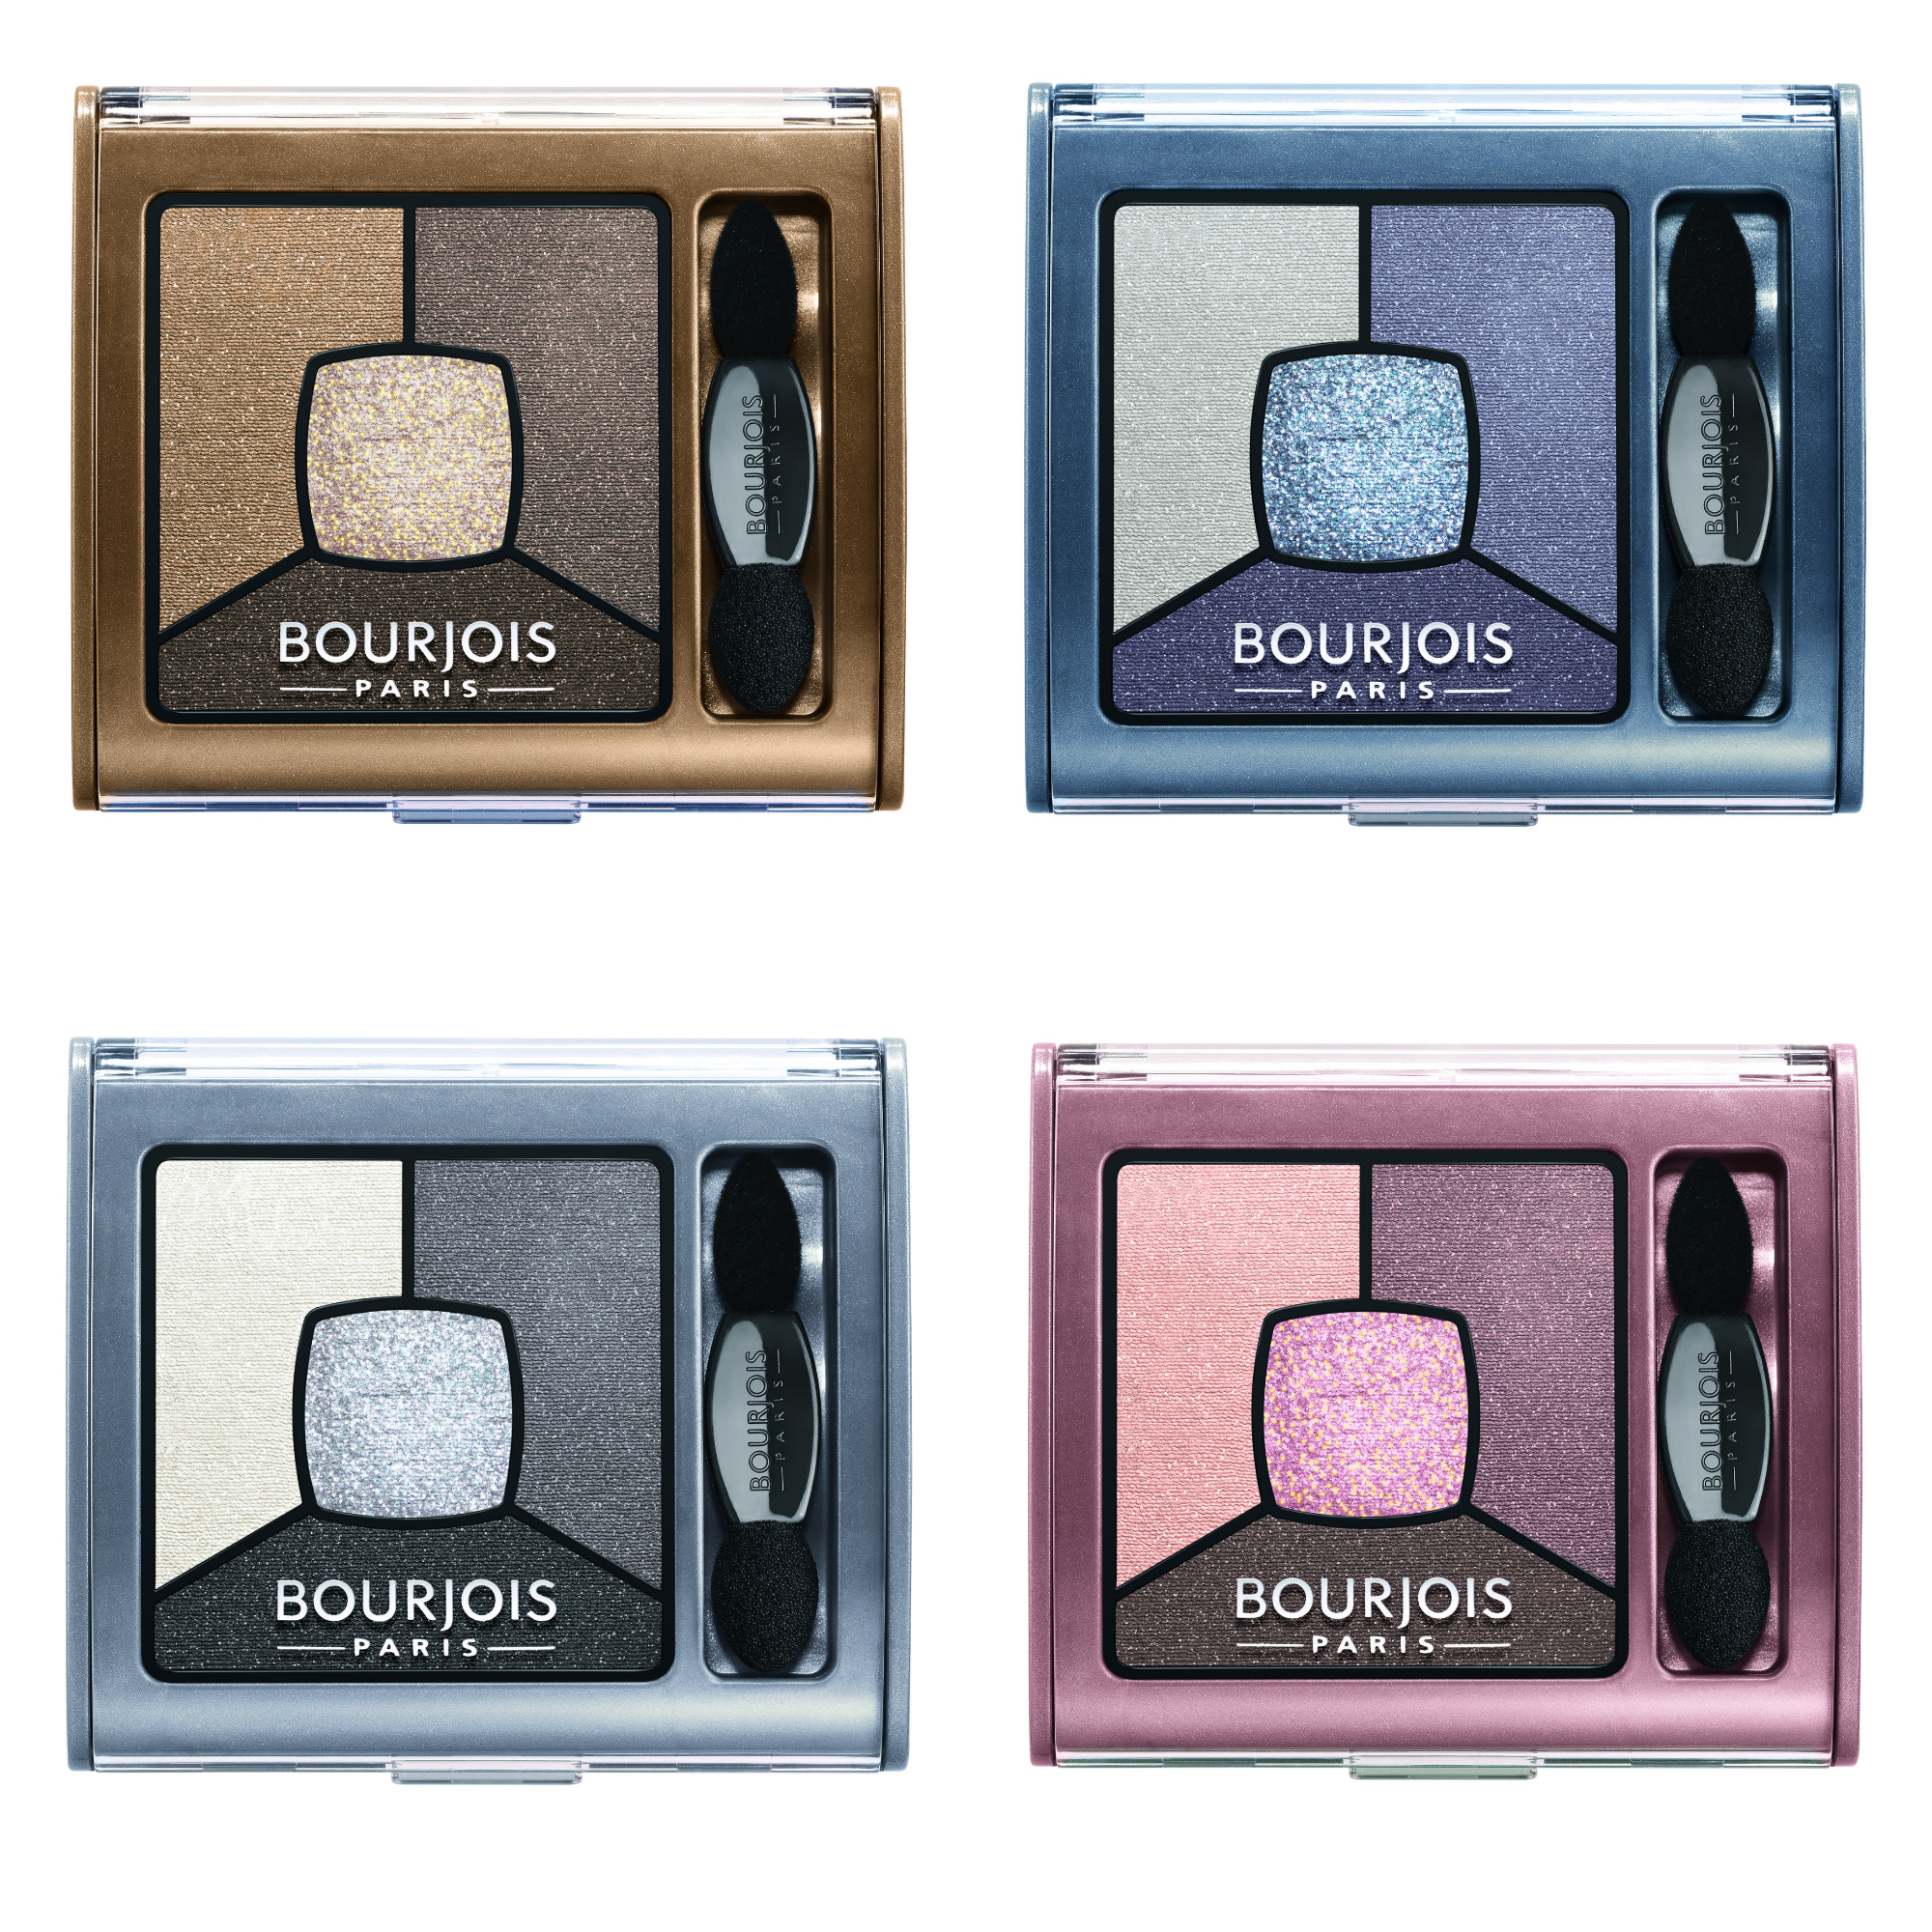 Bourjois Makeup Archives Pretty